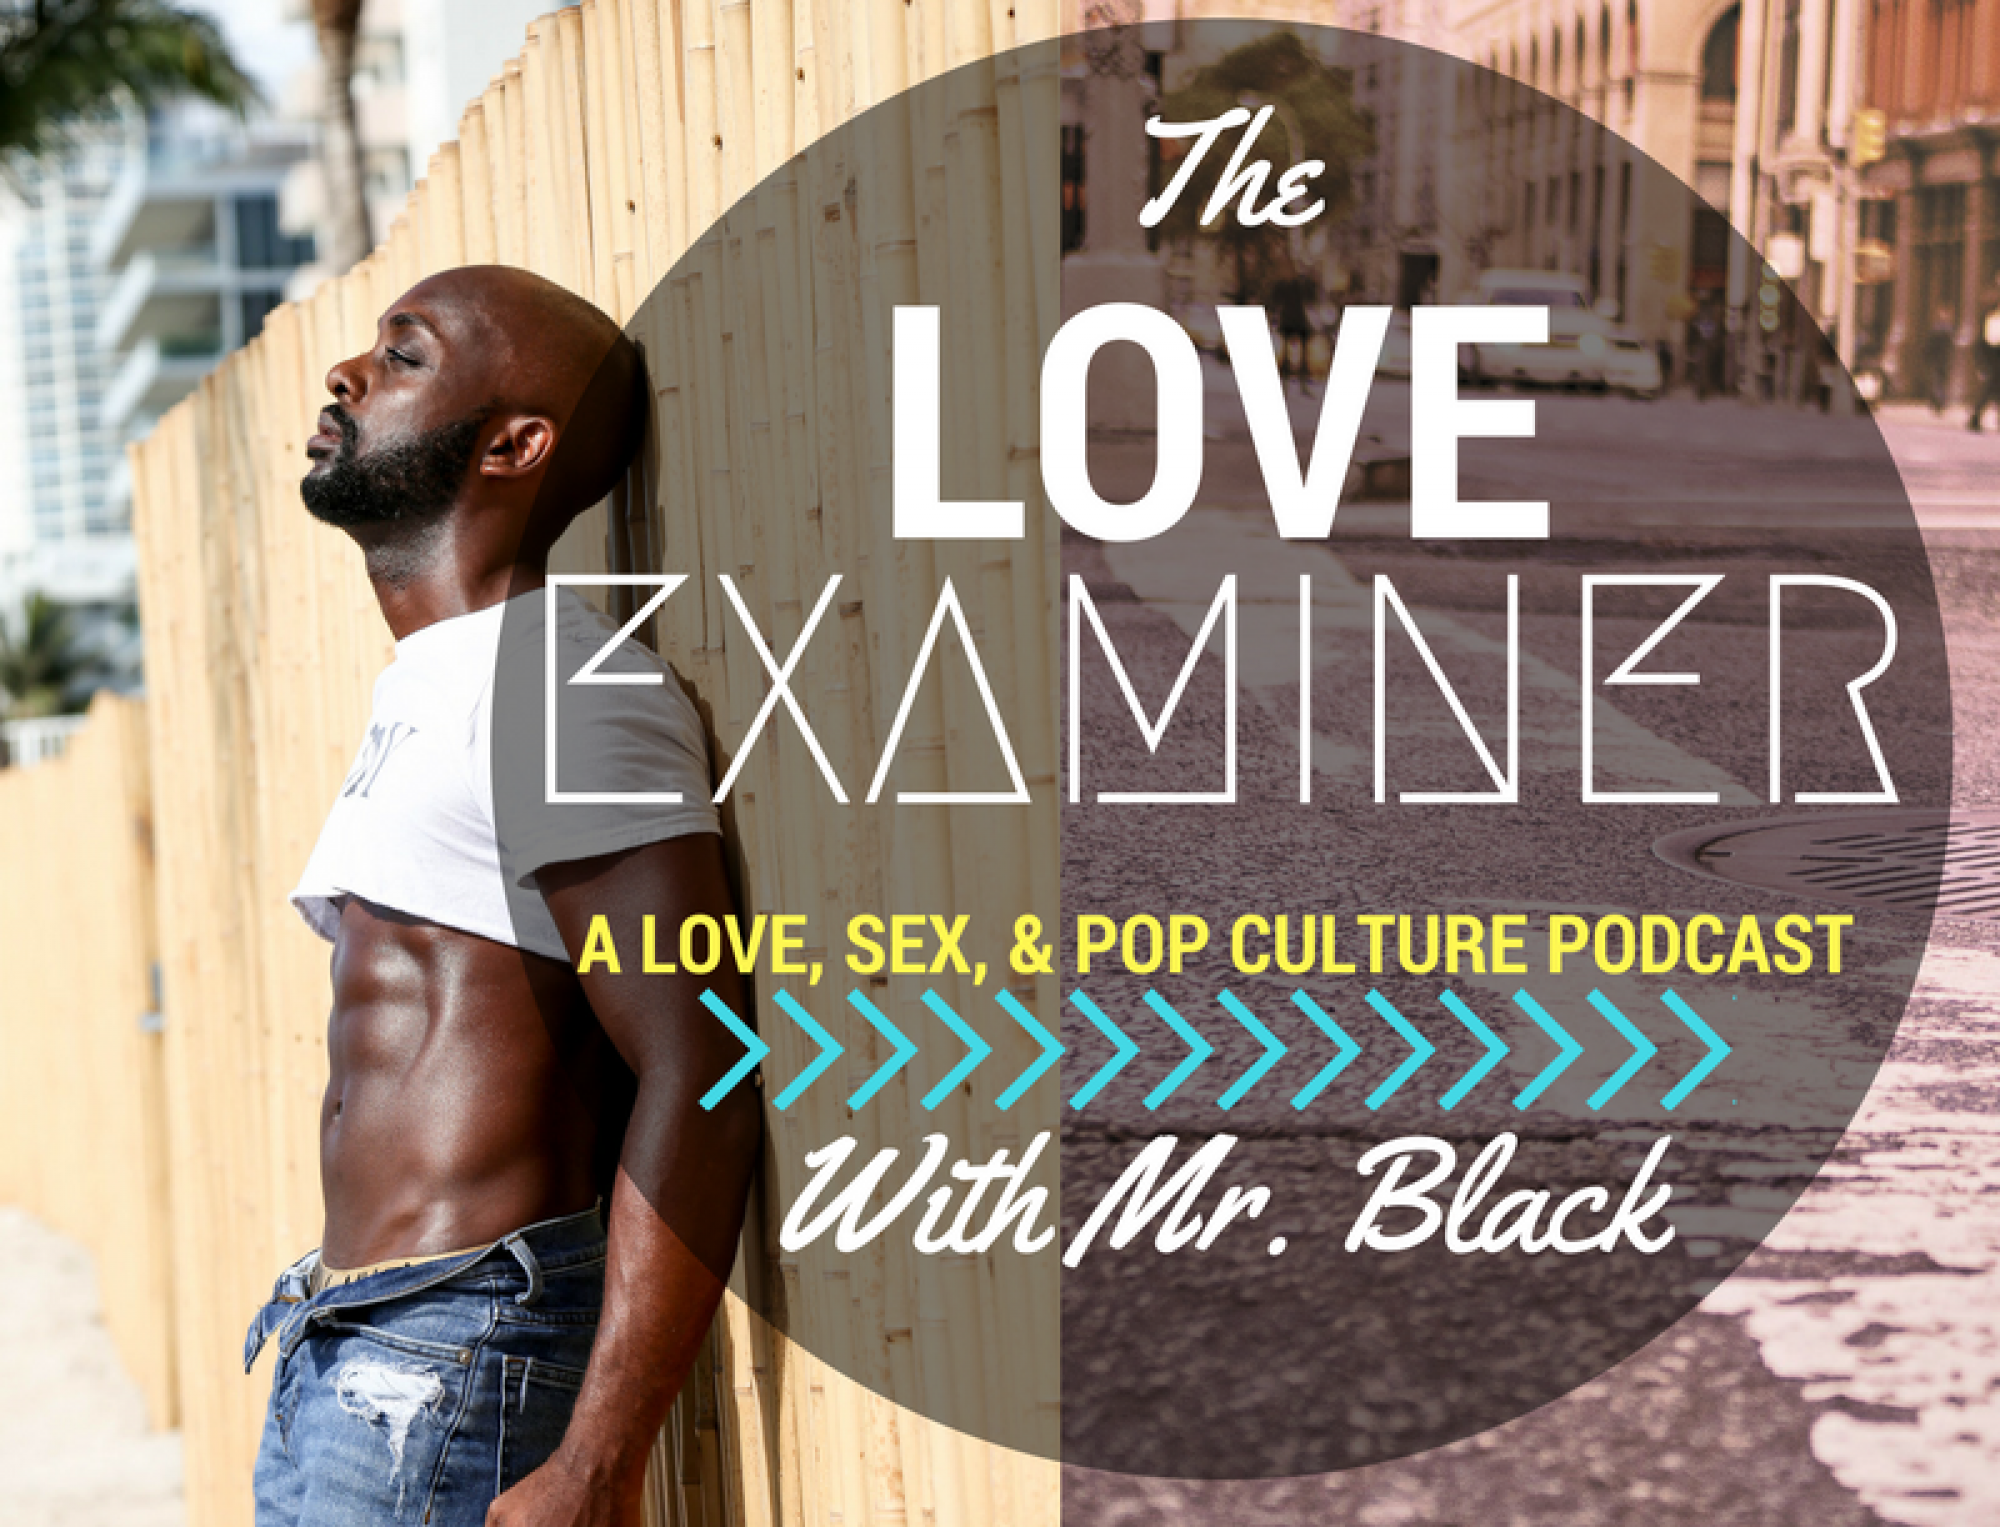 THE LOVE EXAMINER PODCAST